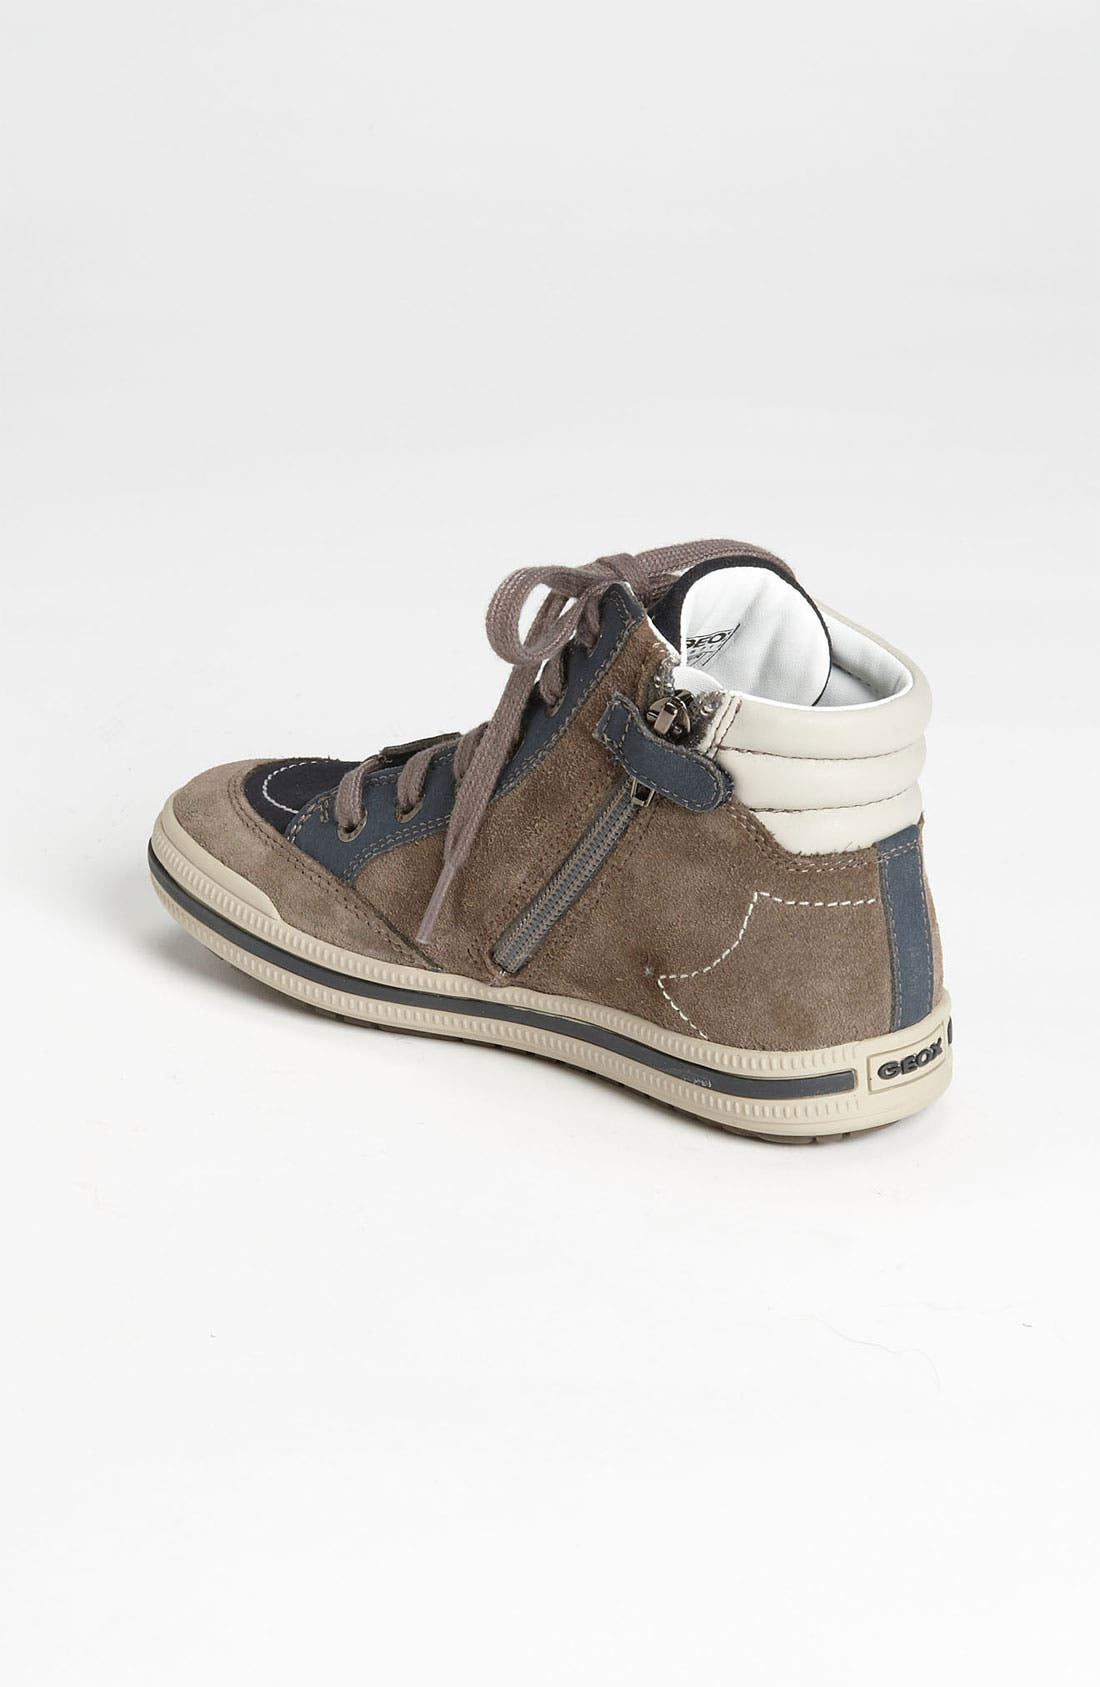 Alternate Image 2  - Geox High Top Sneaker (Toddler, Little Kid & Big Kid)